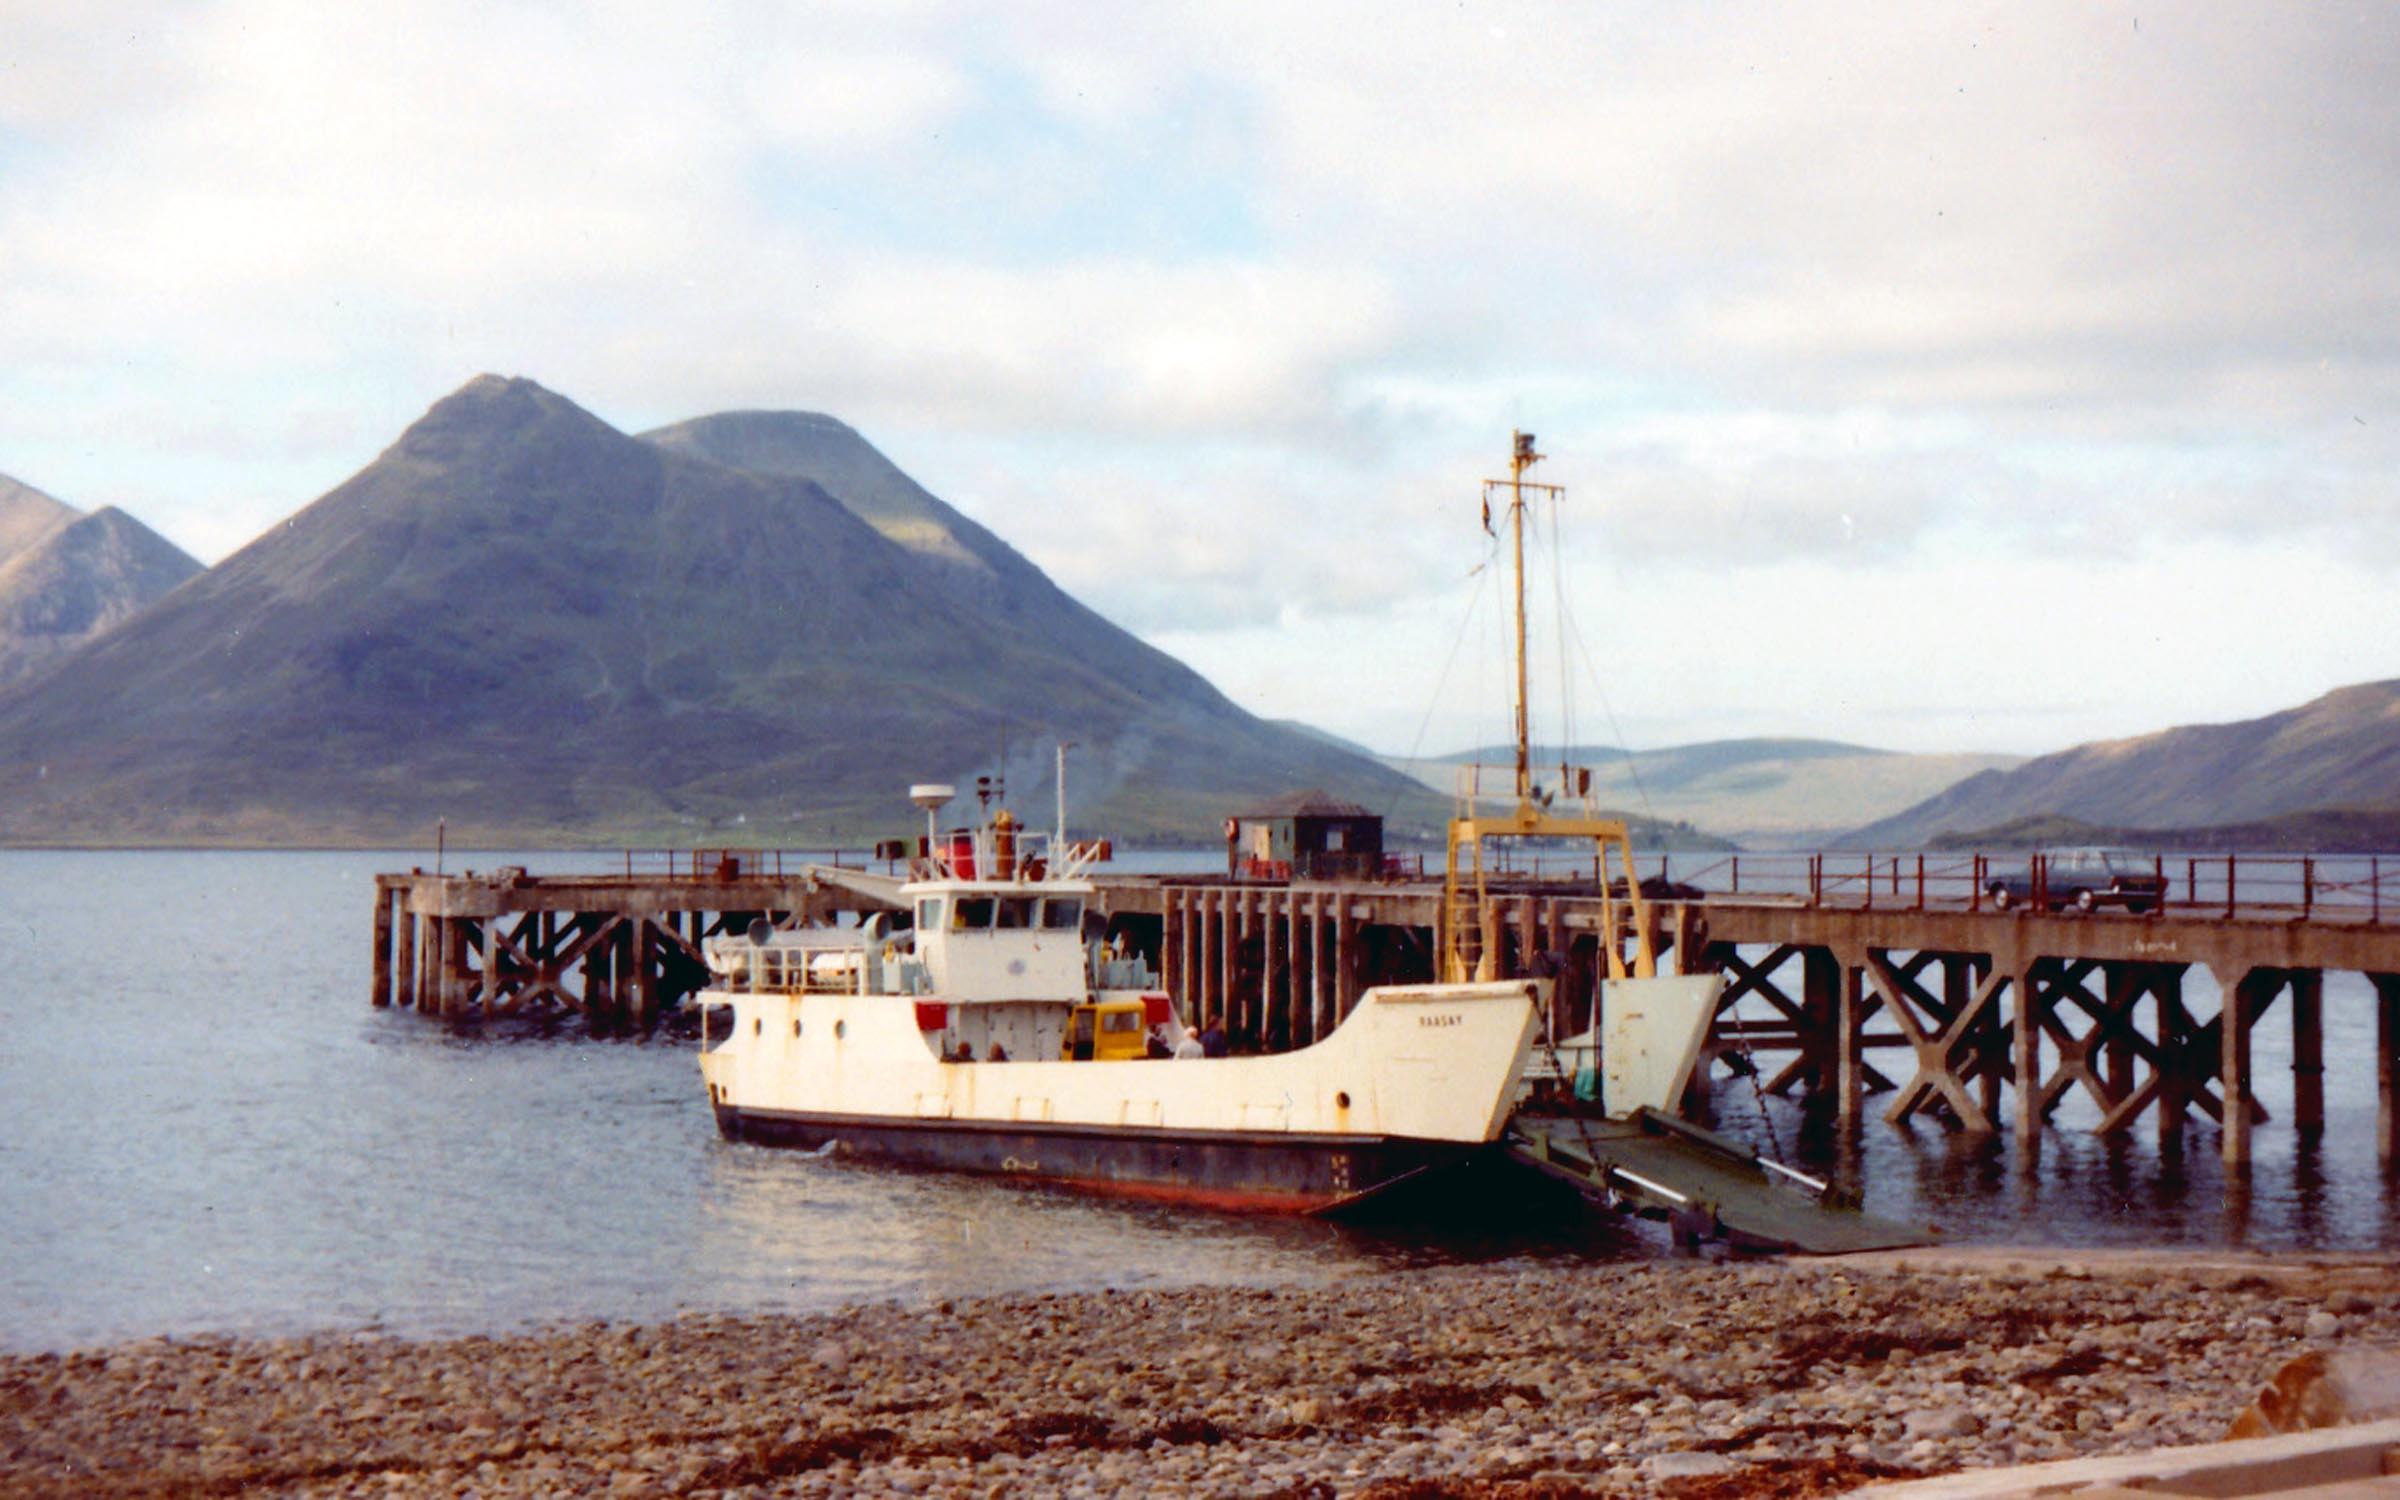 Raasay at Raasay (Jim Aikman Smith)